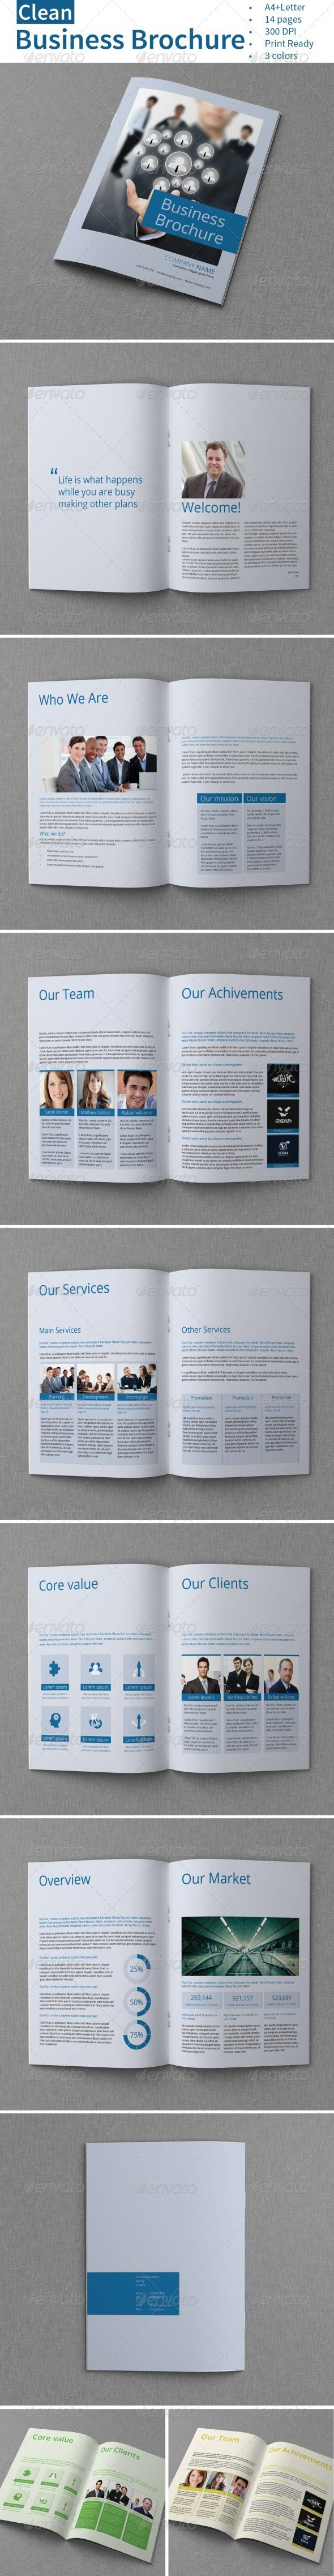 GraphicRiver Clean Business Brochure 7163514